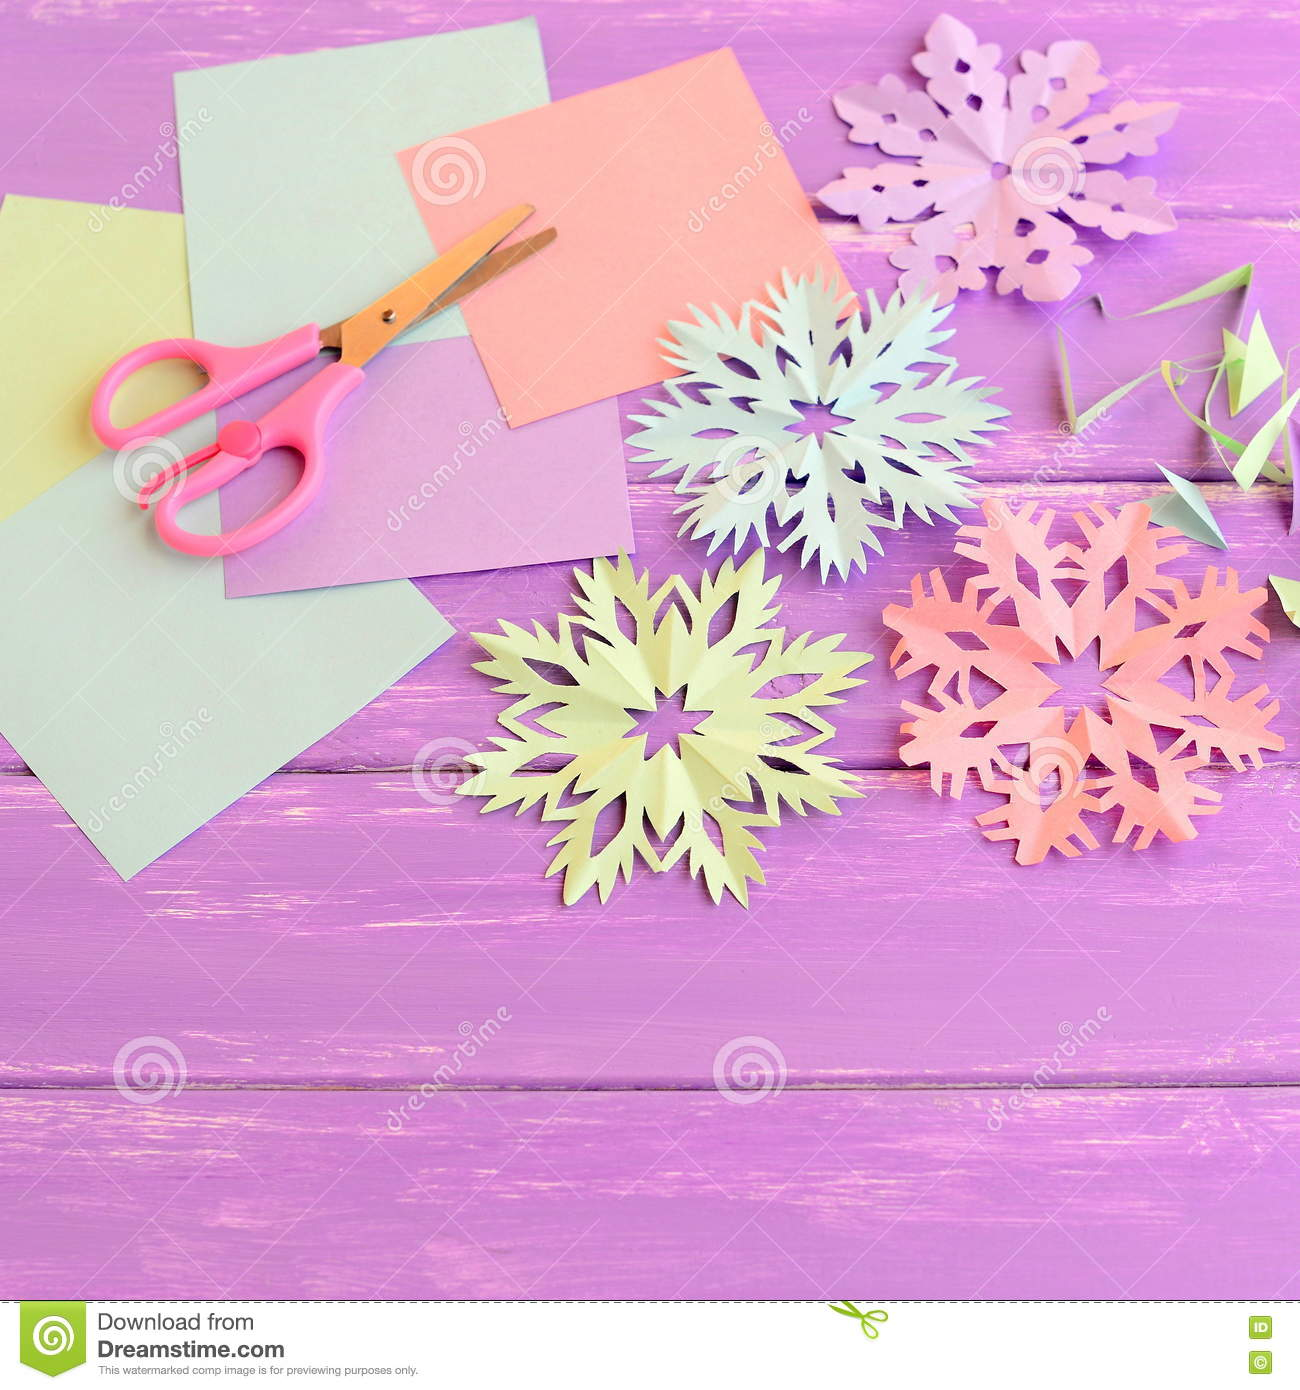 Colorful Paper Snowflakes Ornaments, Colored Paper Sheets And Scrap